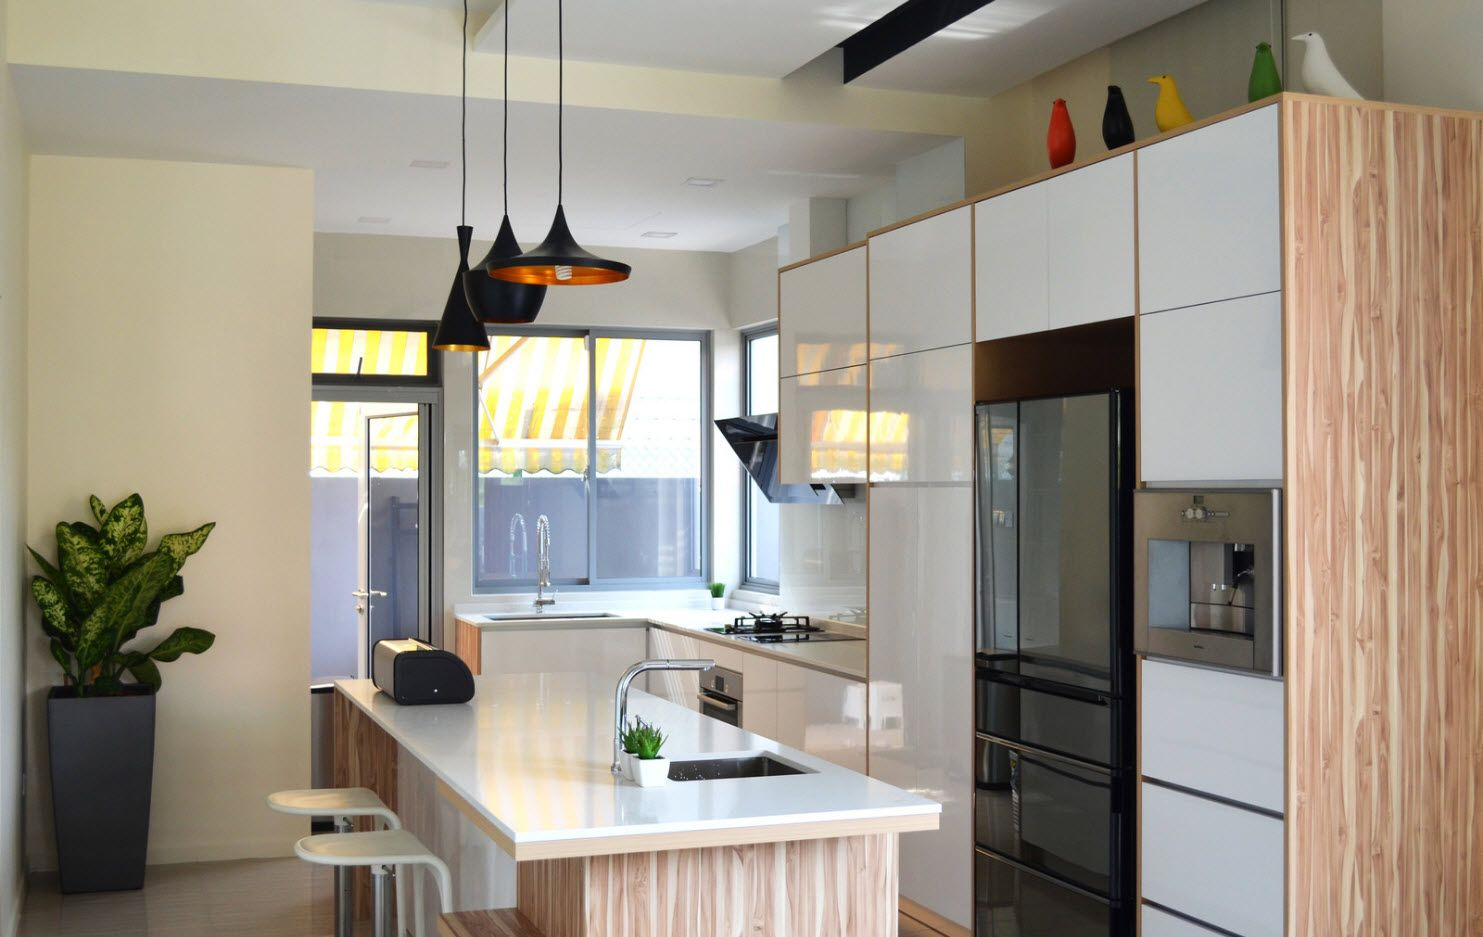 40 Square Feet Kitchen Modern Design Ideas & Layout Types. Modern stylistic and gray chandaliers